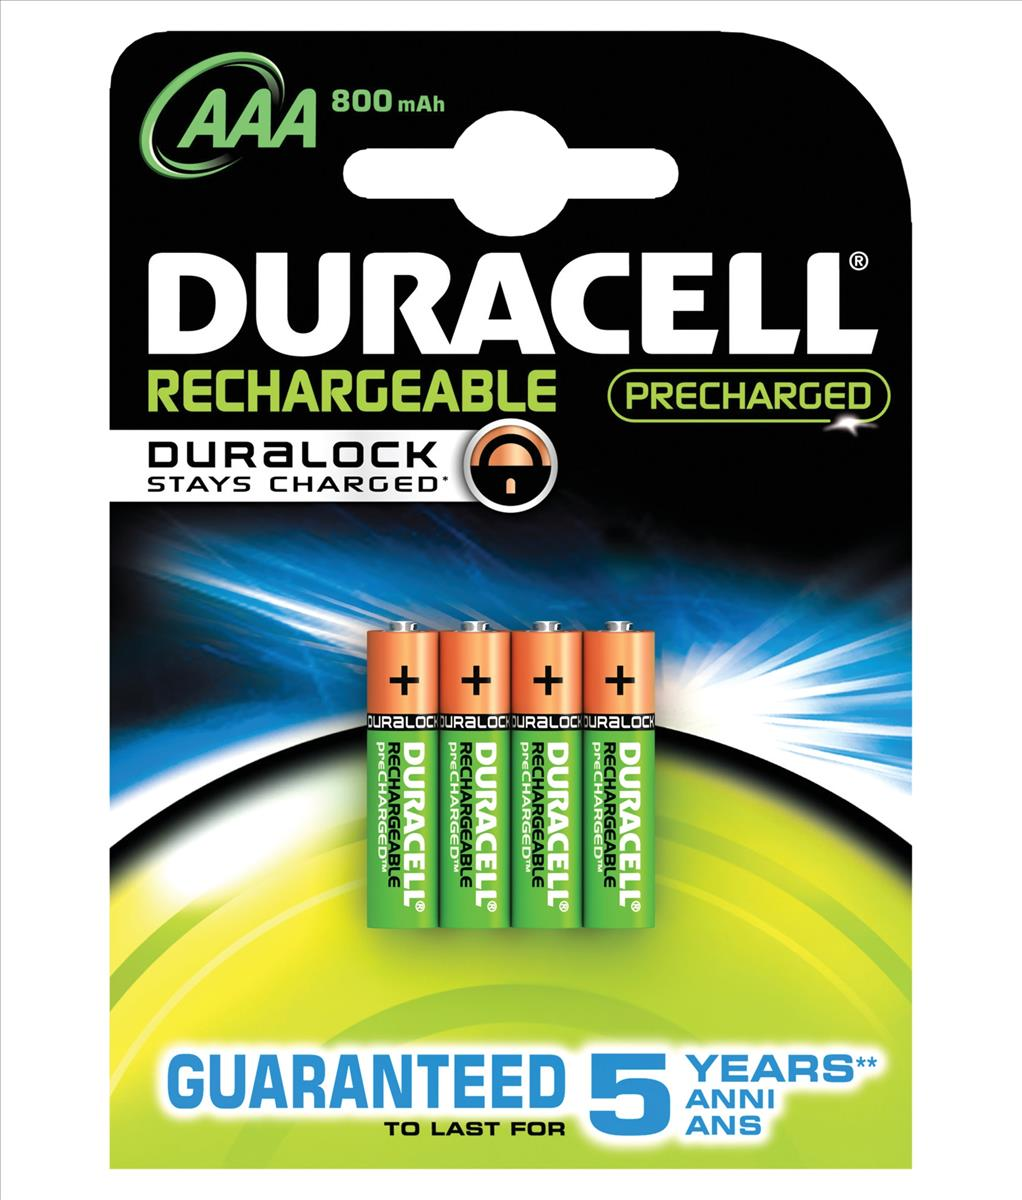 Image for Duracell Stay Charged Battery Long-life Rechargeable 800mAh AAA Size 1.2V Ref 81364755 [Pack 4]